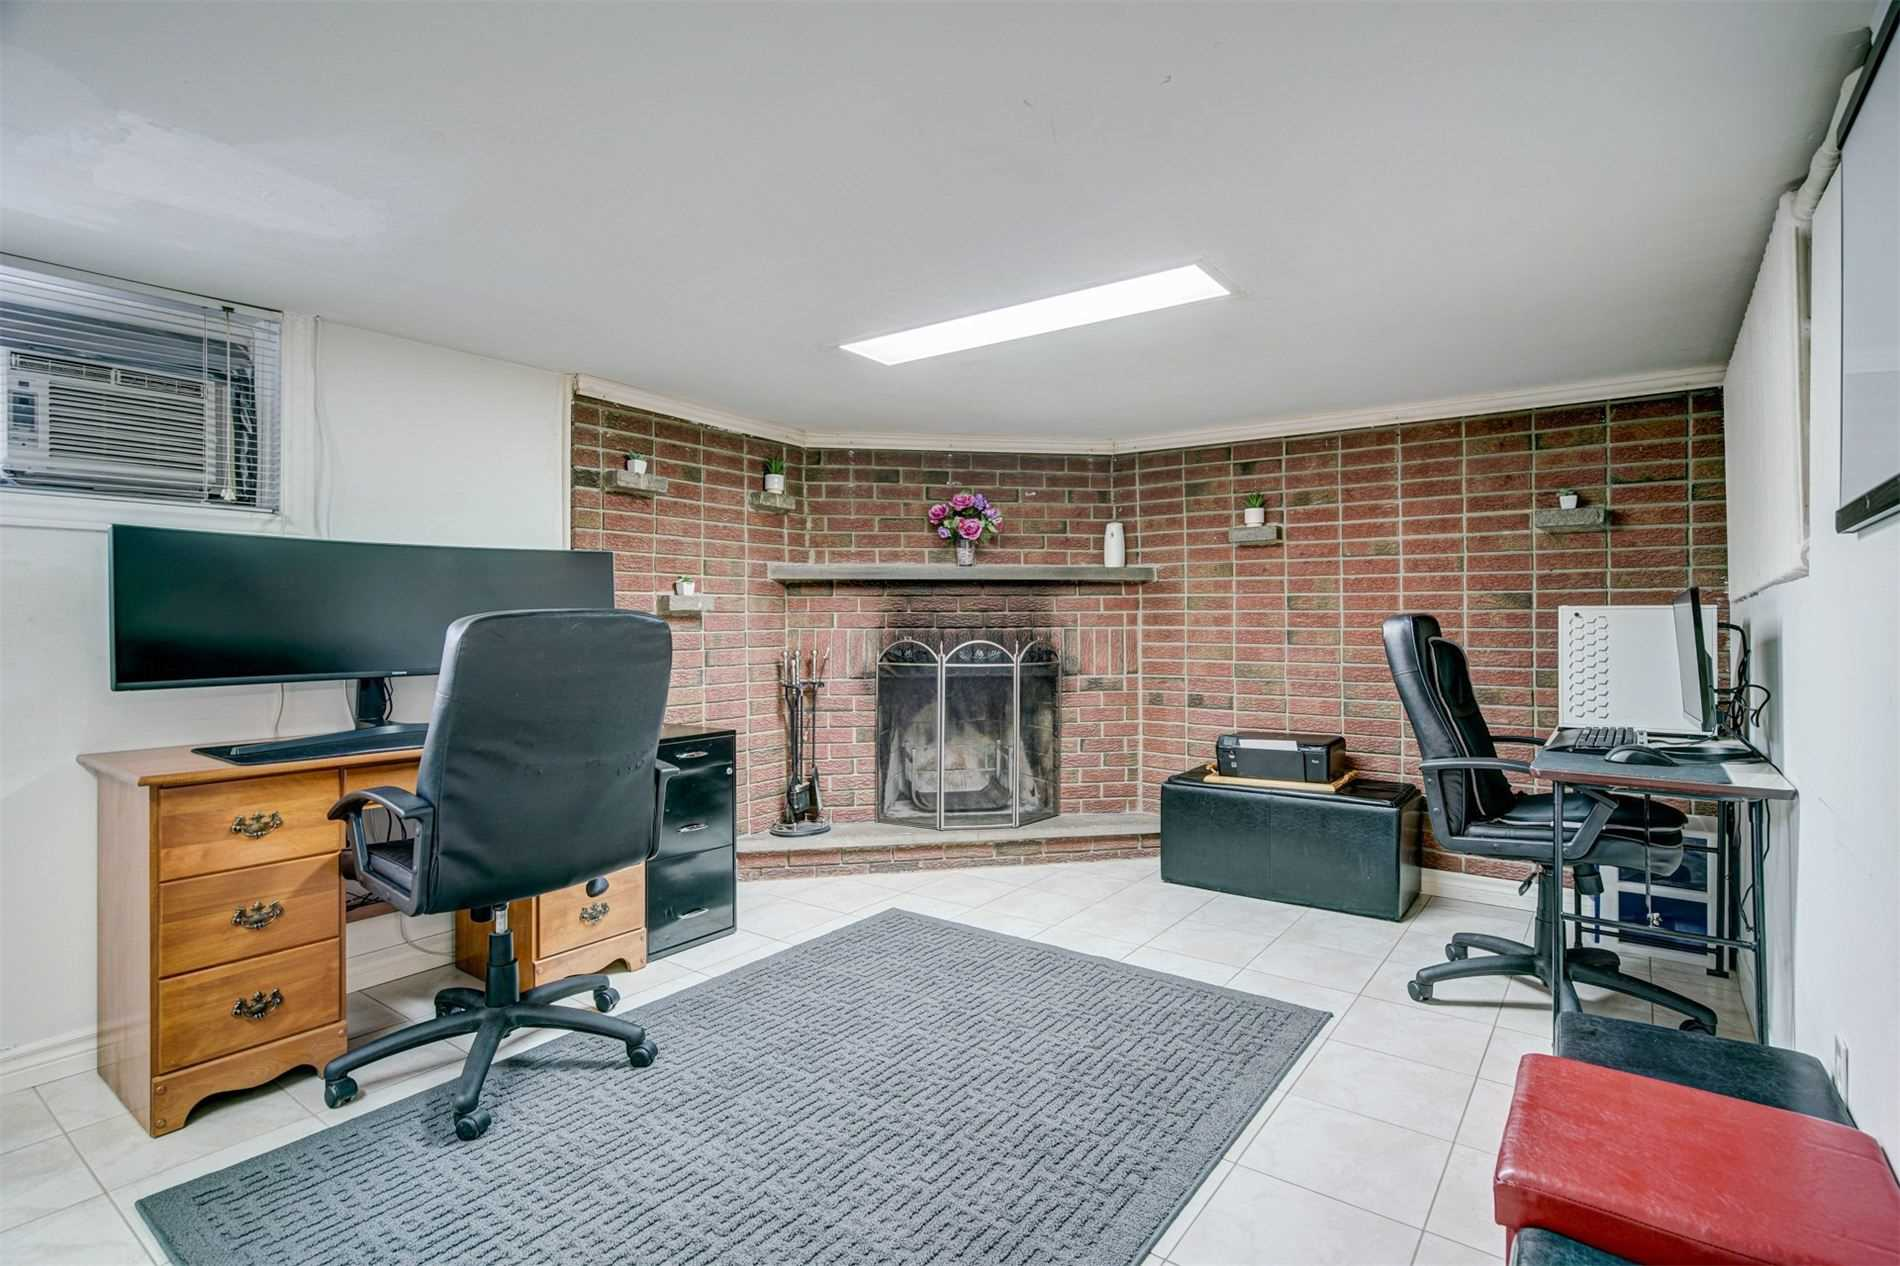 554 Caledonia Rd - Caledonia-Fairbank Detached for sale, 2 Bedrooms (W5305900) - #25